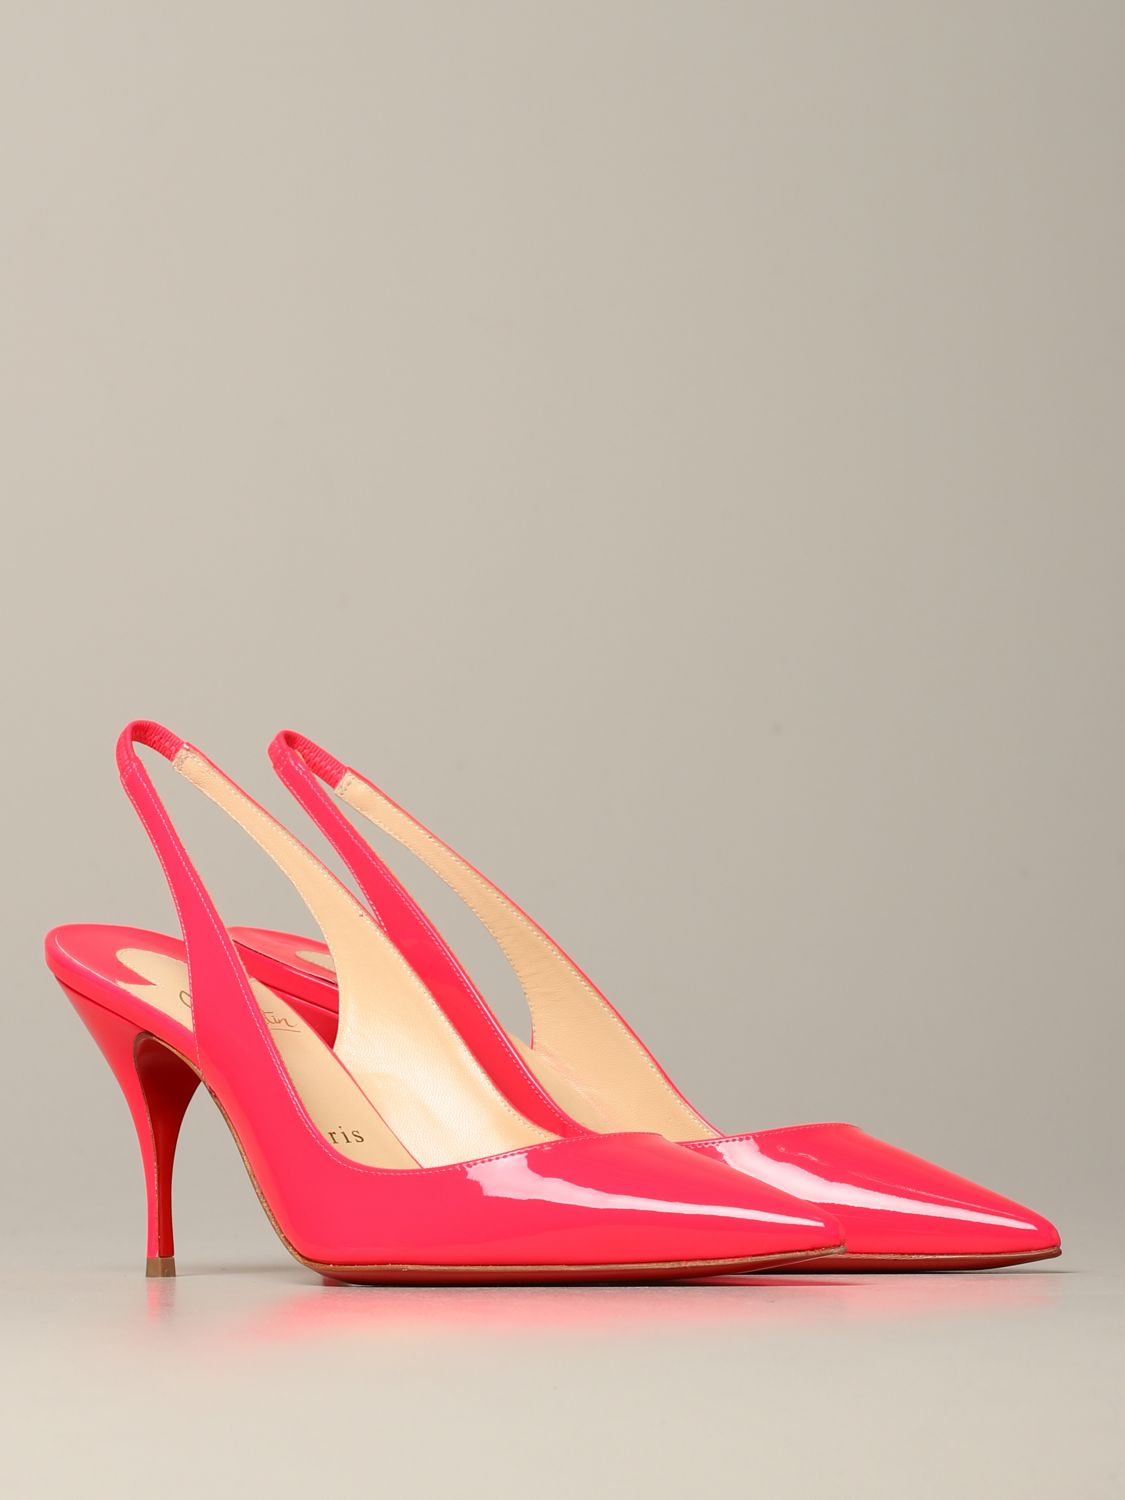 Christian Louboutin Clare sling back in fluorescent paint pink 2